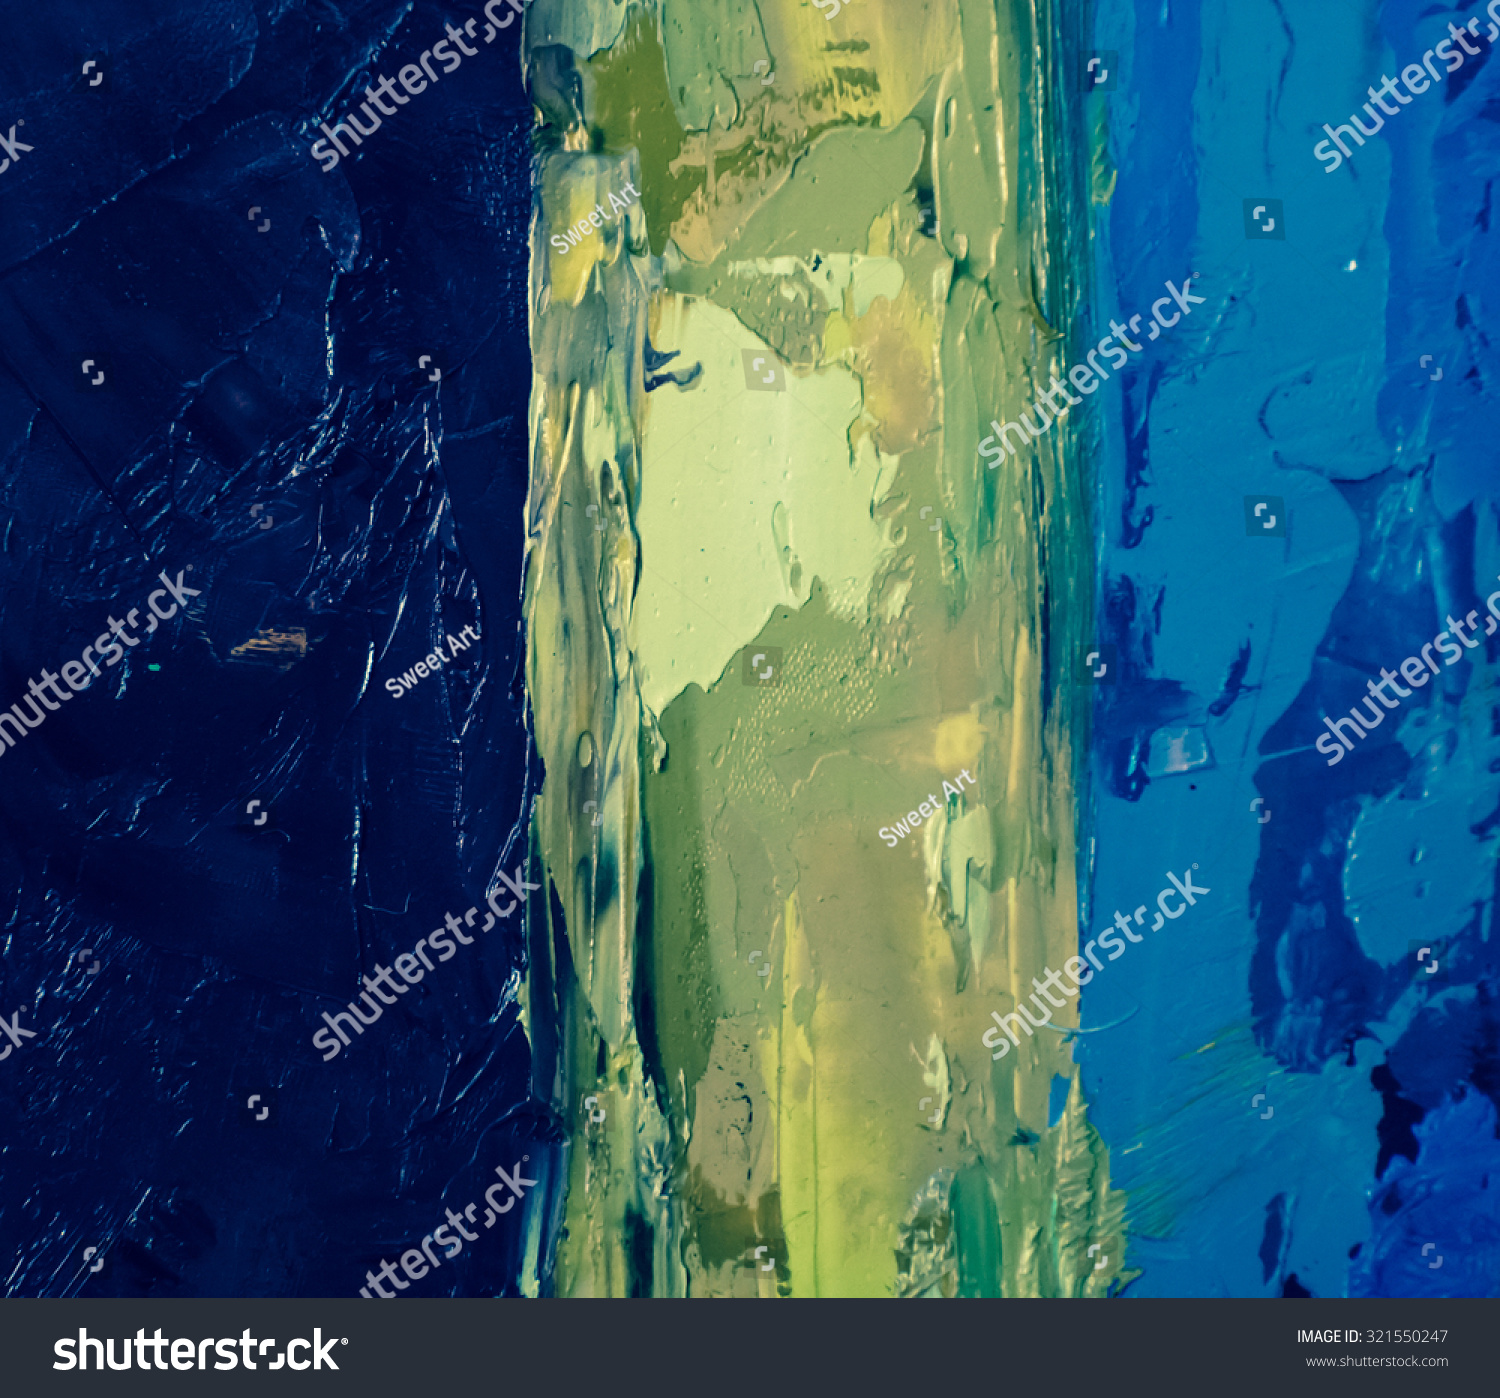 Oil Canvas Art Stock Photo Abstract Art Background Oil Painting On